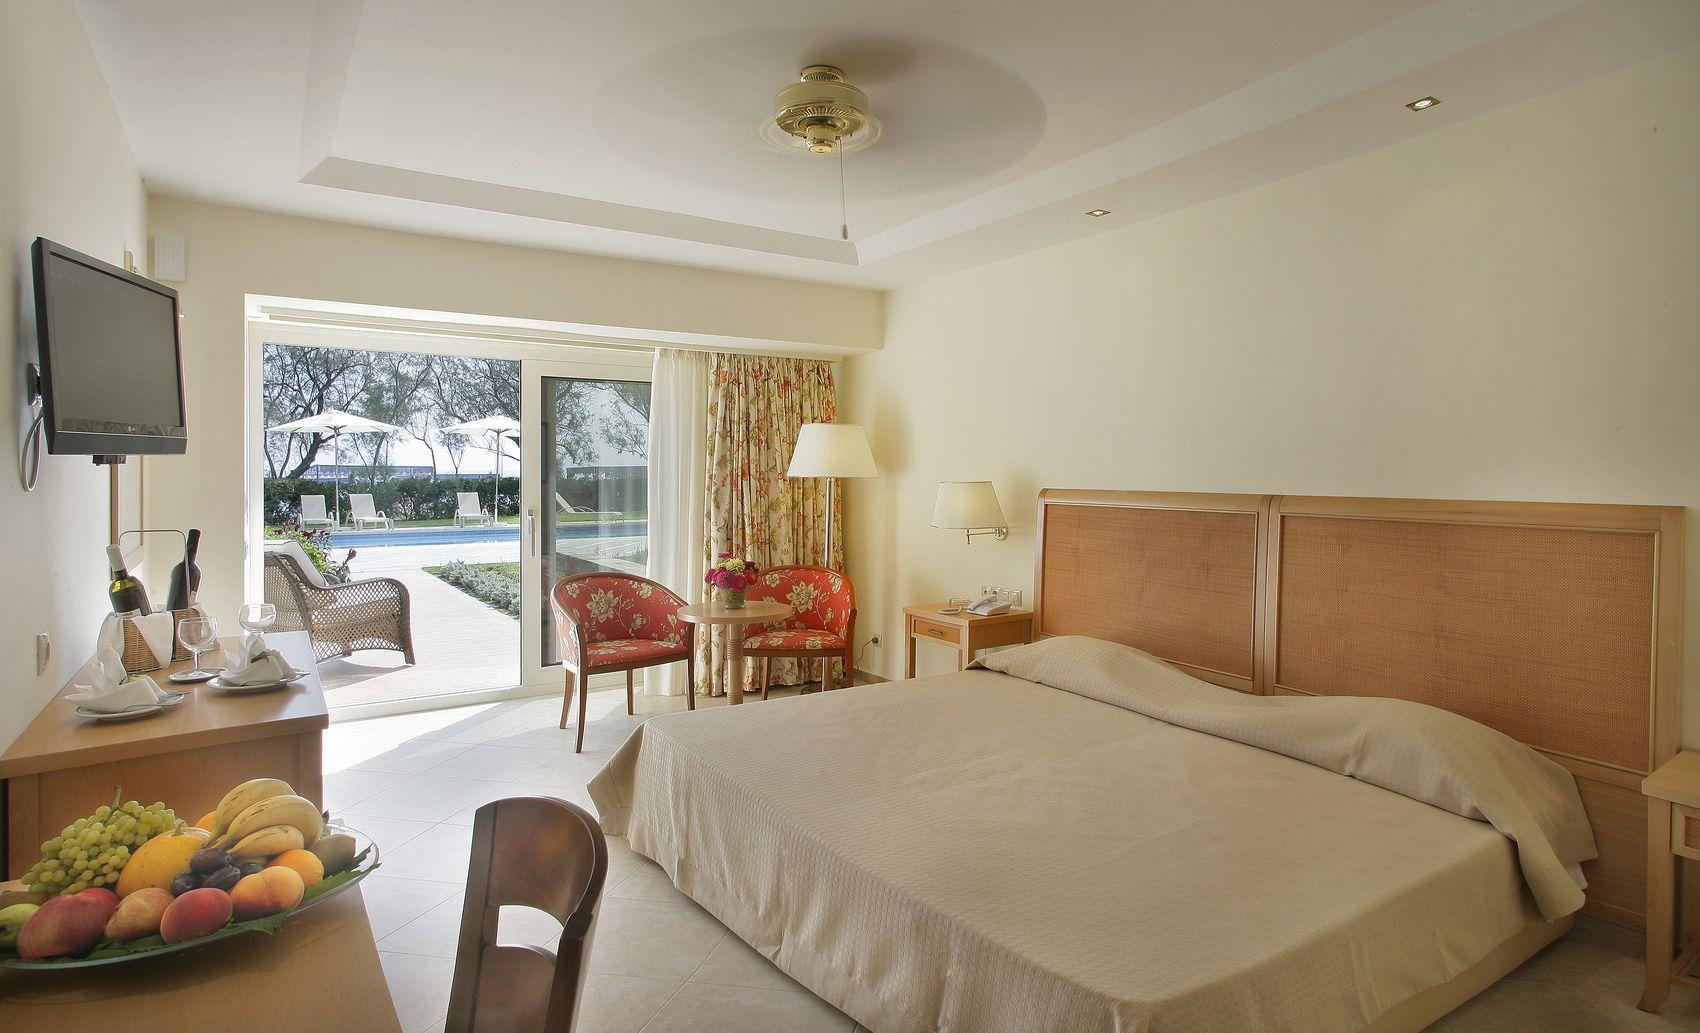 g-hotels-theophano-imperial-palace-genel-006